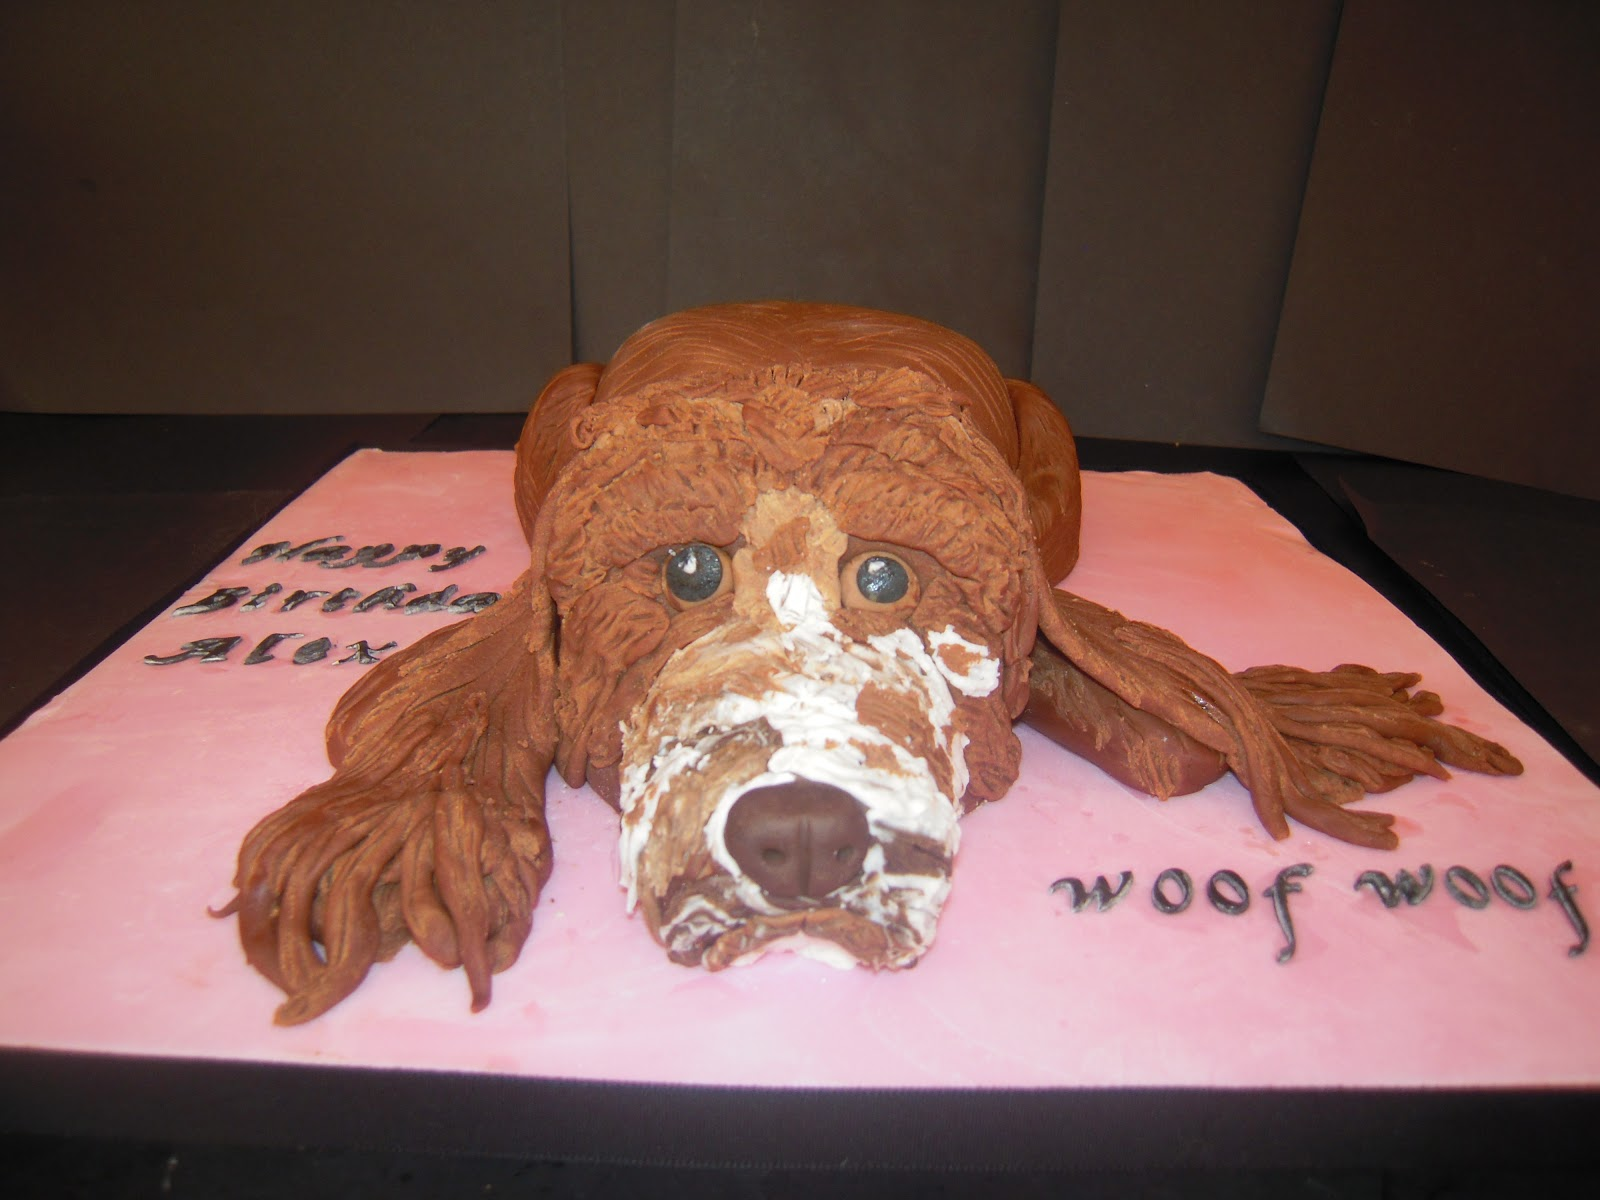 Another Cake Customer This Time A Cocker Spaniel Although Not Too Sure If It Looks Like One However Dog And Monkey Which